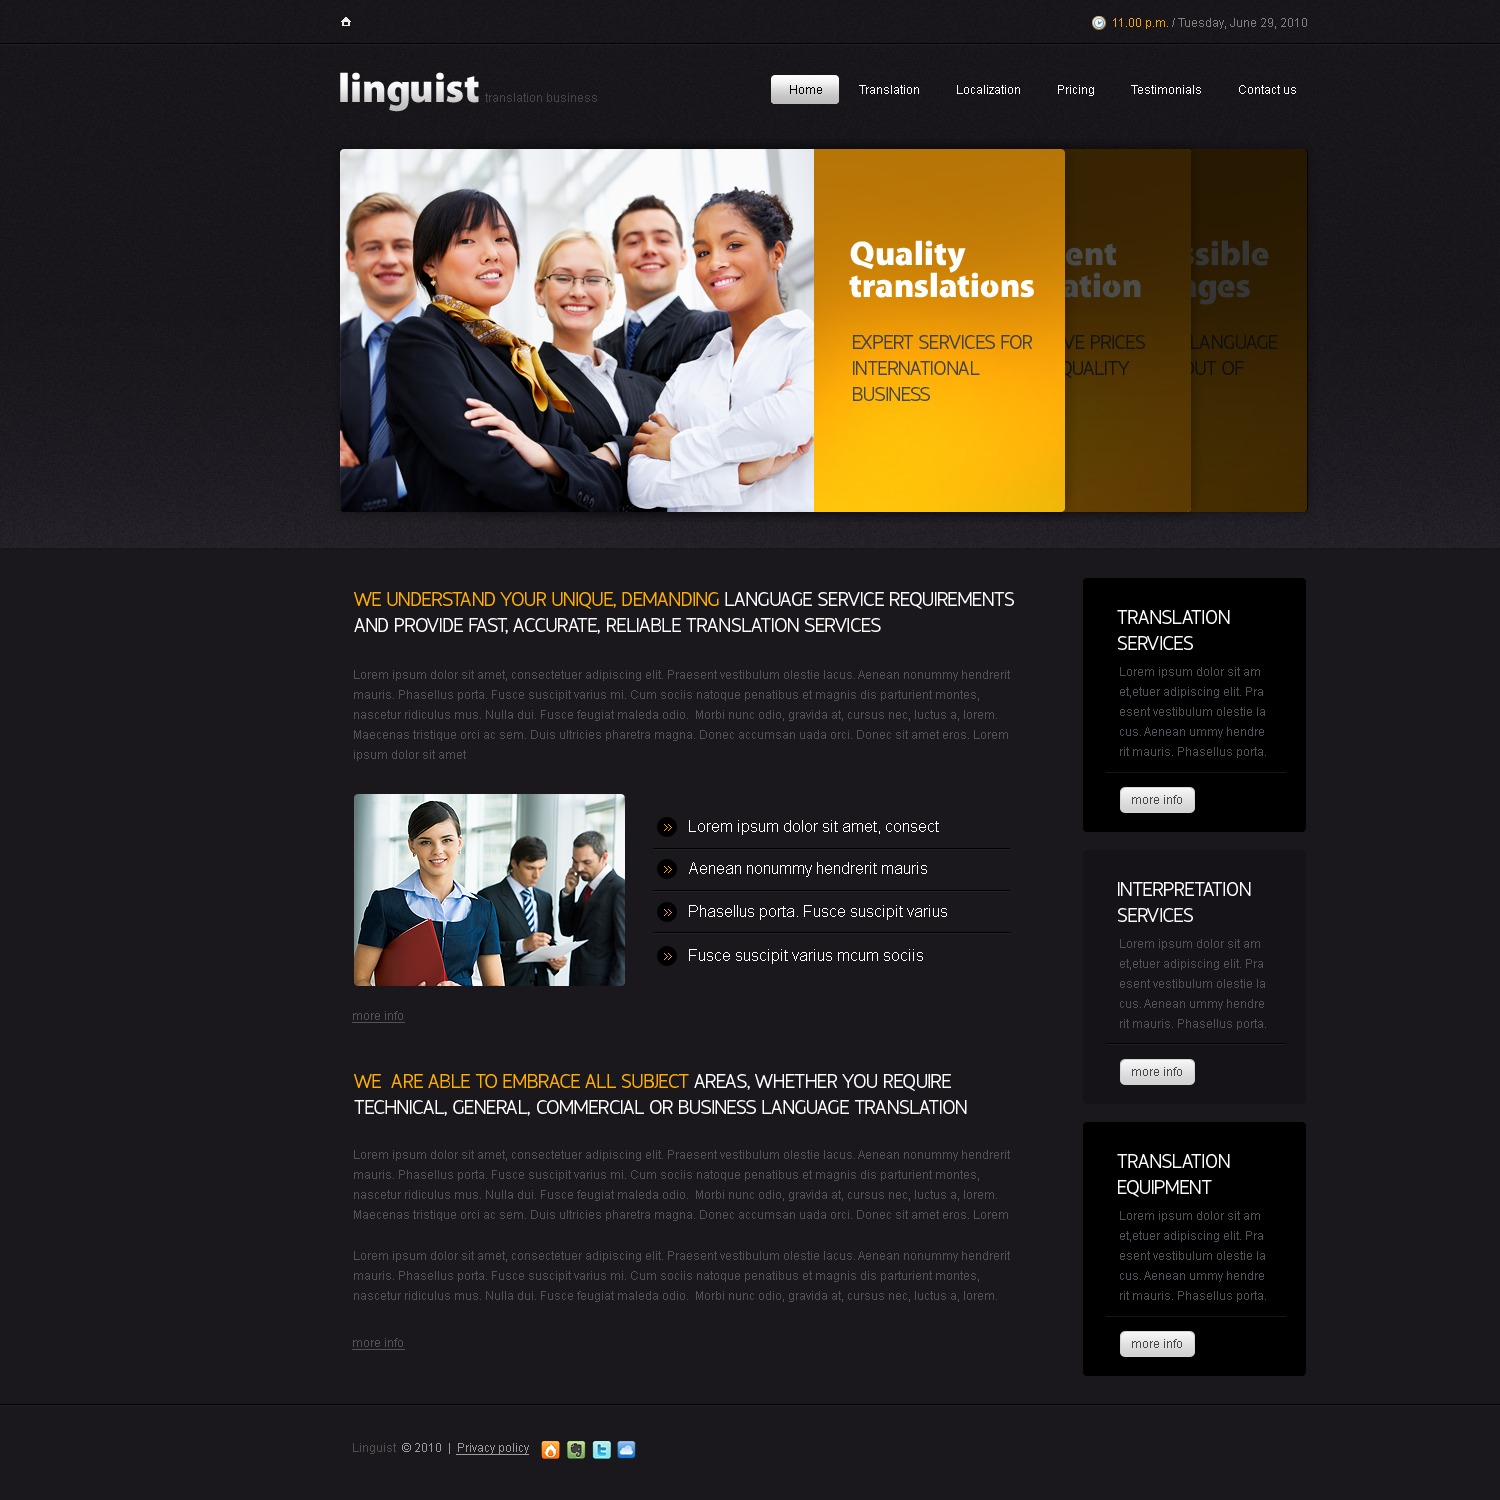 The Linguist Language Center PSD Design 54499, one of the best PSD templates of its kind (education, flash 8, wide), also known as linguist language center PSD template, classes PSD template, learning PSD template, foreign PSD template, teaching PSD template, course PSD template, teacher PSD template, student PSD template, education PSD template, students PSD template, admissions PSD template, academic PSD template, courses PSD template, linguistics PSD template, terms PSD template, terminology PSD template, speech PSD template, communication PSD template, spoken PSD template, language PSD template, translations PSD template, training PSD template, skills PSD template, knowledge PSD template, style PSD template, internationa and related with linguist language center, classes, learning, foreign, teaching, course, teacher, student, education, students, admissions, academic, courses, linguistics, terms, terminology, speech, communication, spoken, language, translations, training, skills, knowledge, style, internationa, etc.